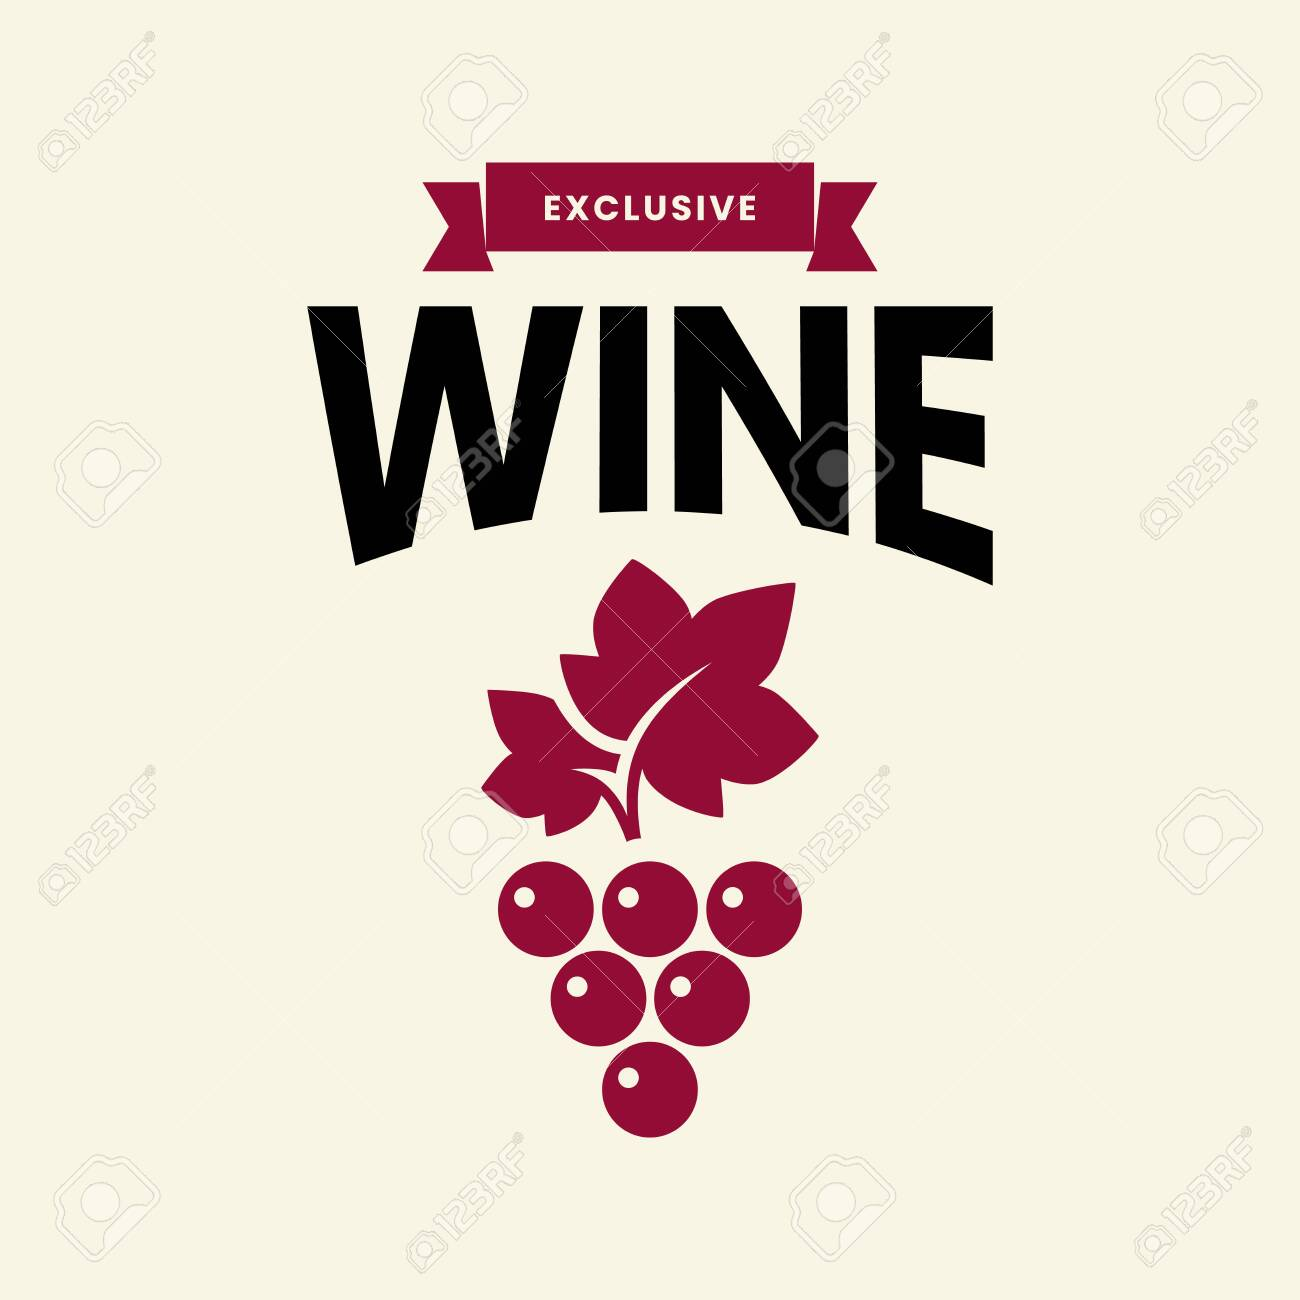 Modern wine vector logo sign for tavern, restaurant, house, shop, store, club and cellar isolated on light background. Premium quality vinery logotype illustration. Fashion brand badge design template. - 120438816